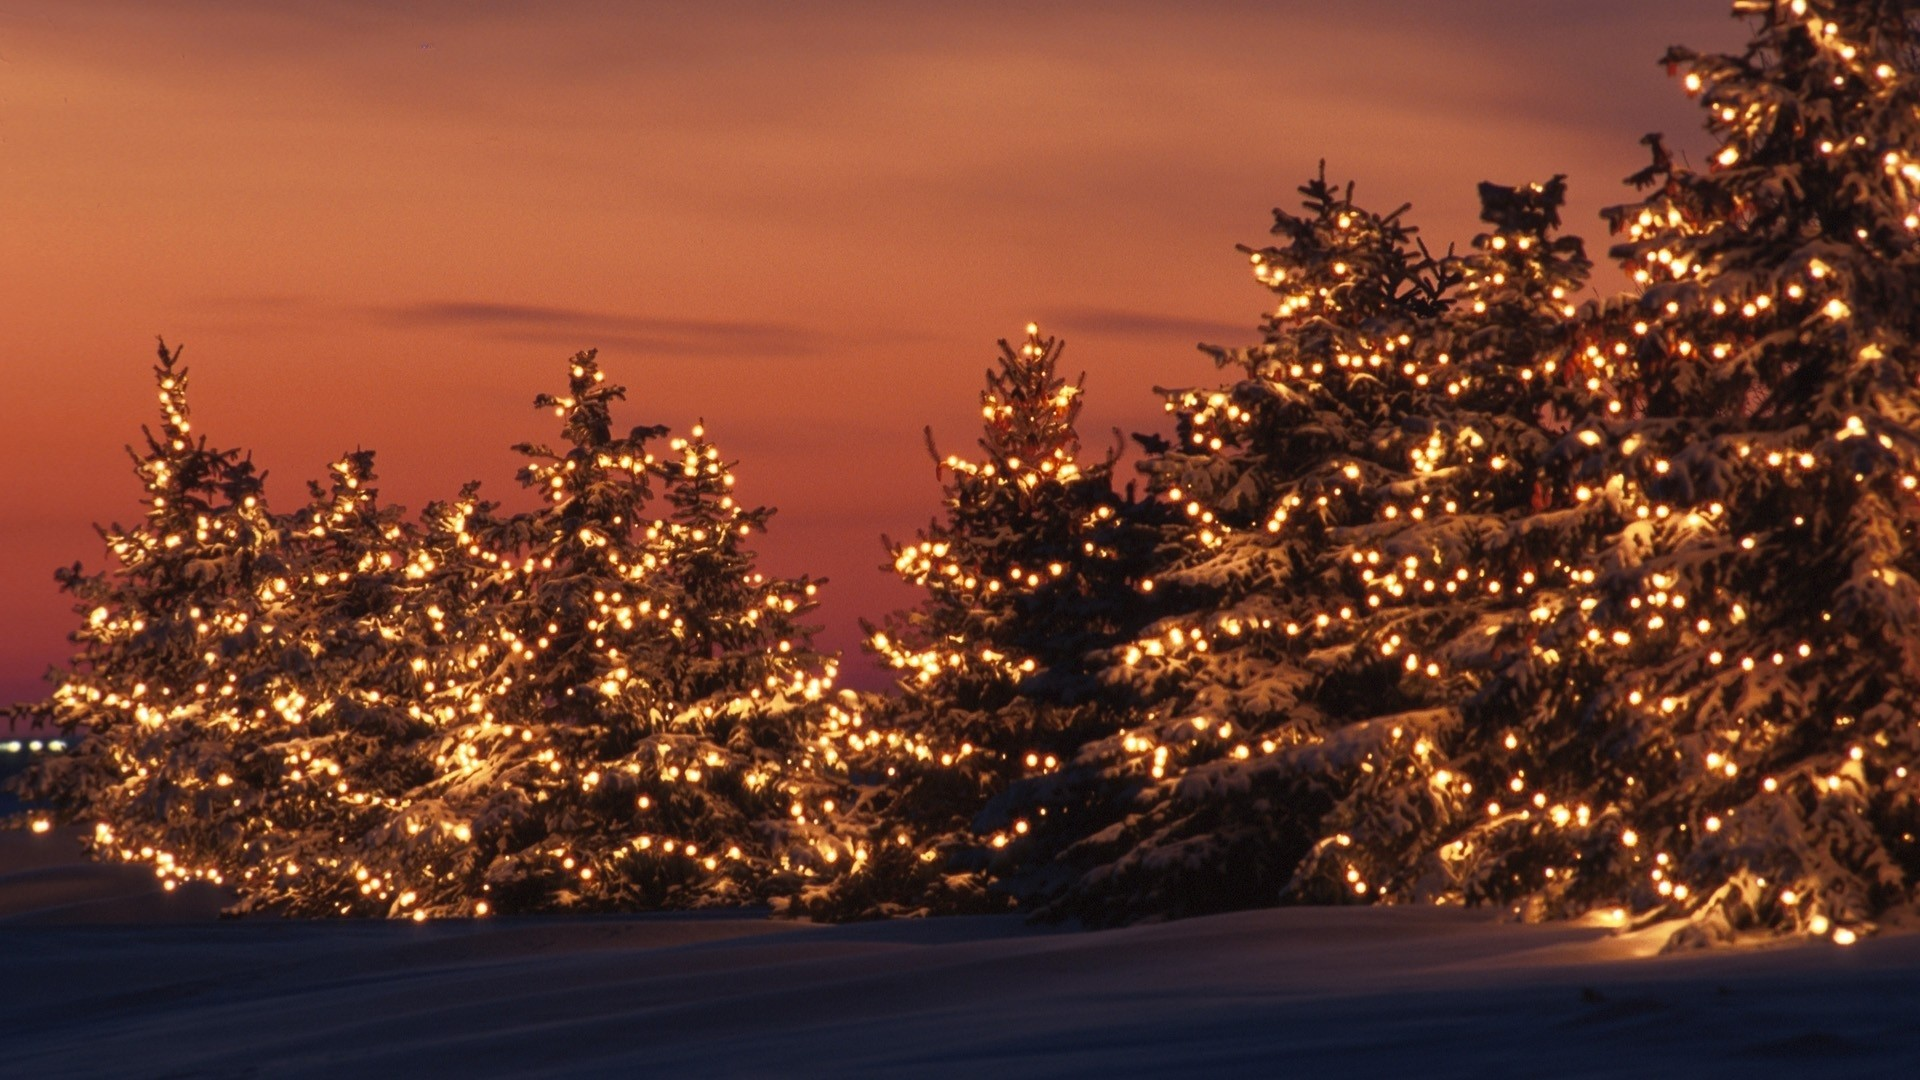 Res: 1920x1080, Free Christmas Winter Wallpaper Hd Images Lights X For Laptop